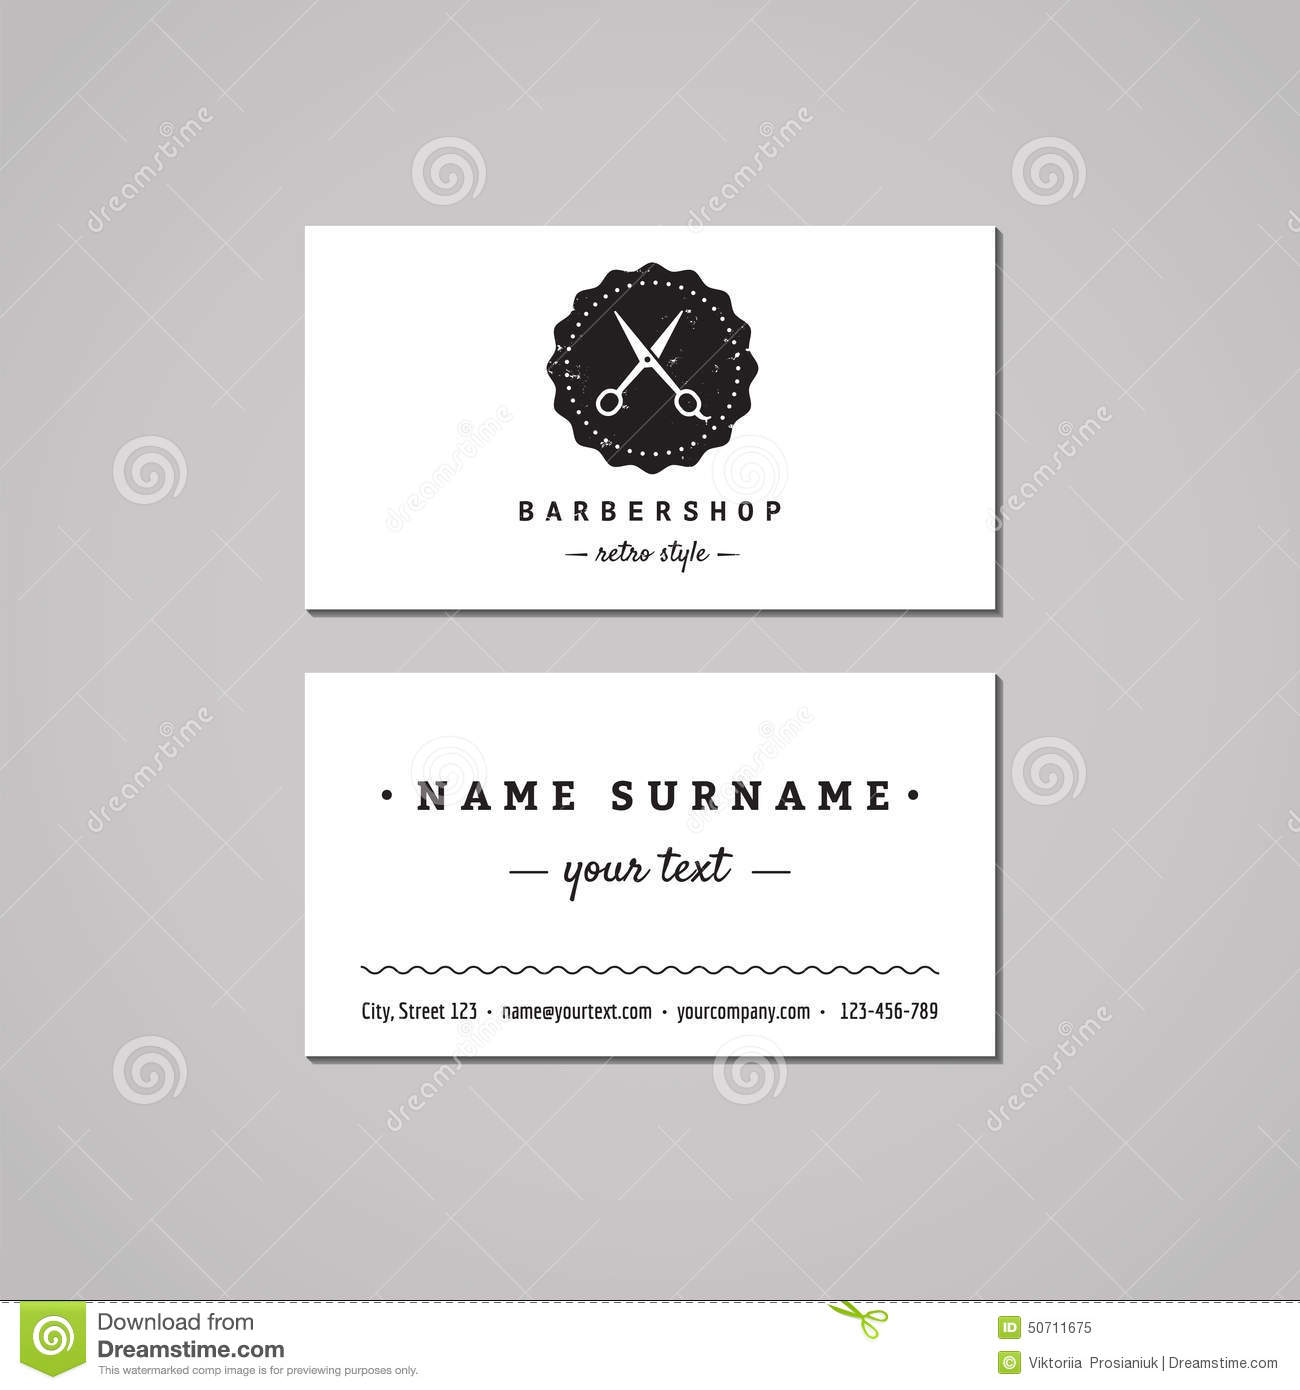 Barbershop business card design concept barbershop logo with barbershop business card design concept barbershop logo with scissors and badge vintage hipster and retro style reheart Image collections